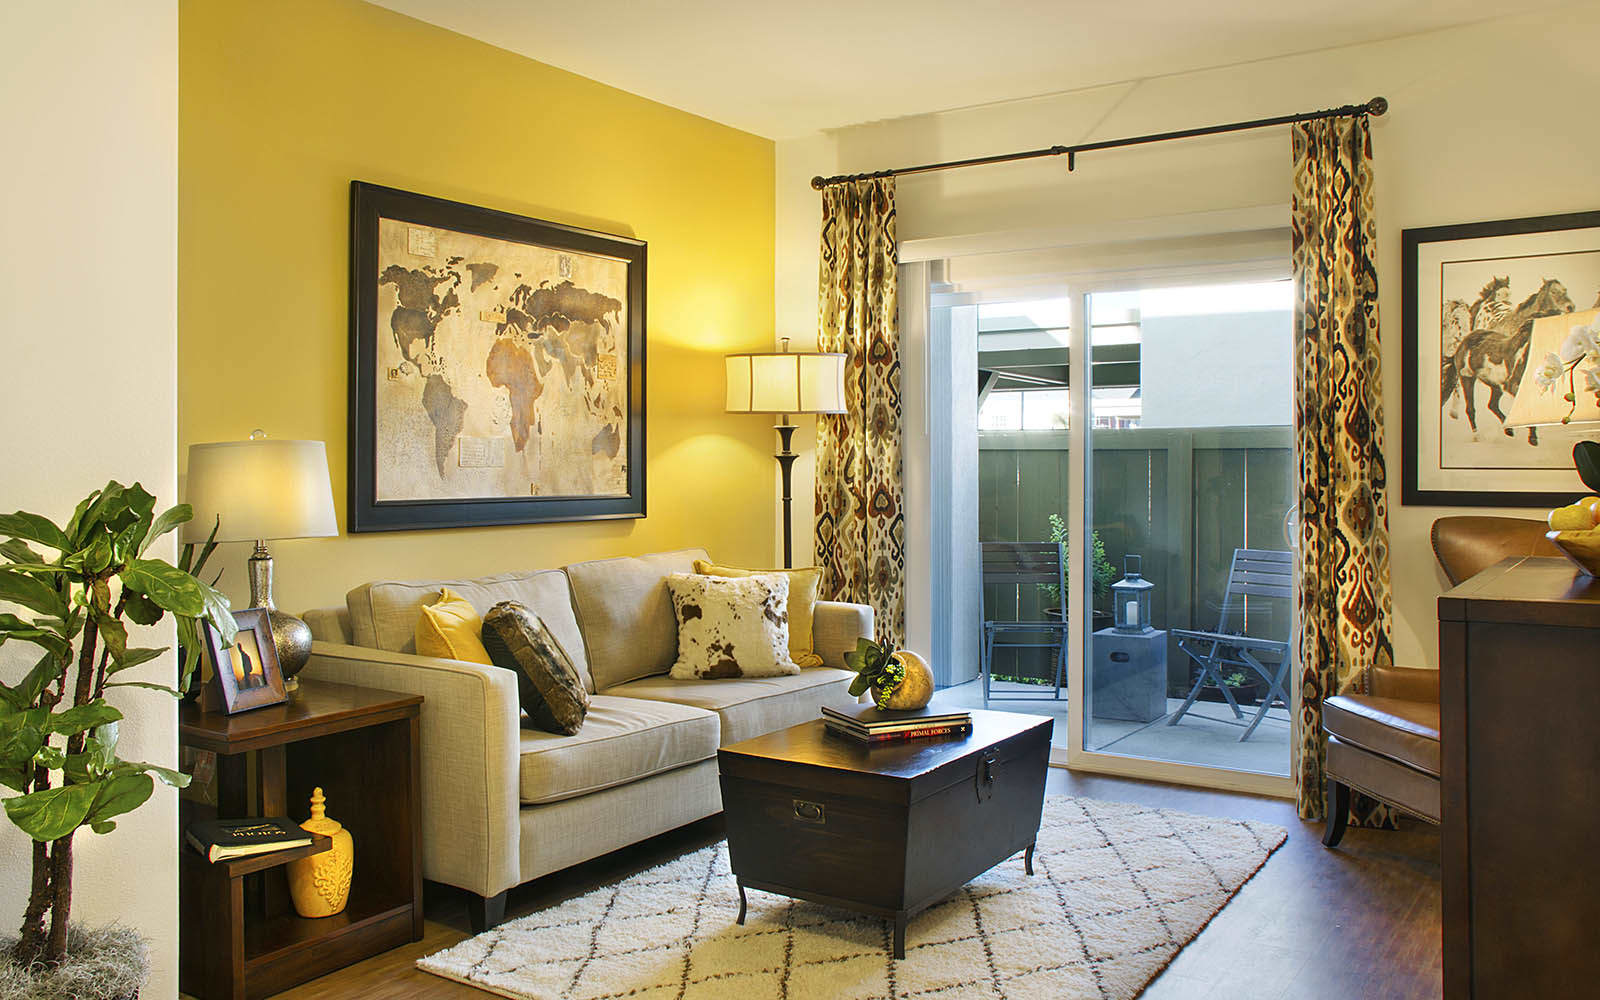 Living Room With Accent Wall at Siena Apartments in Santa Maria, CA